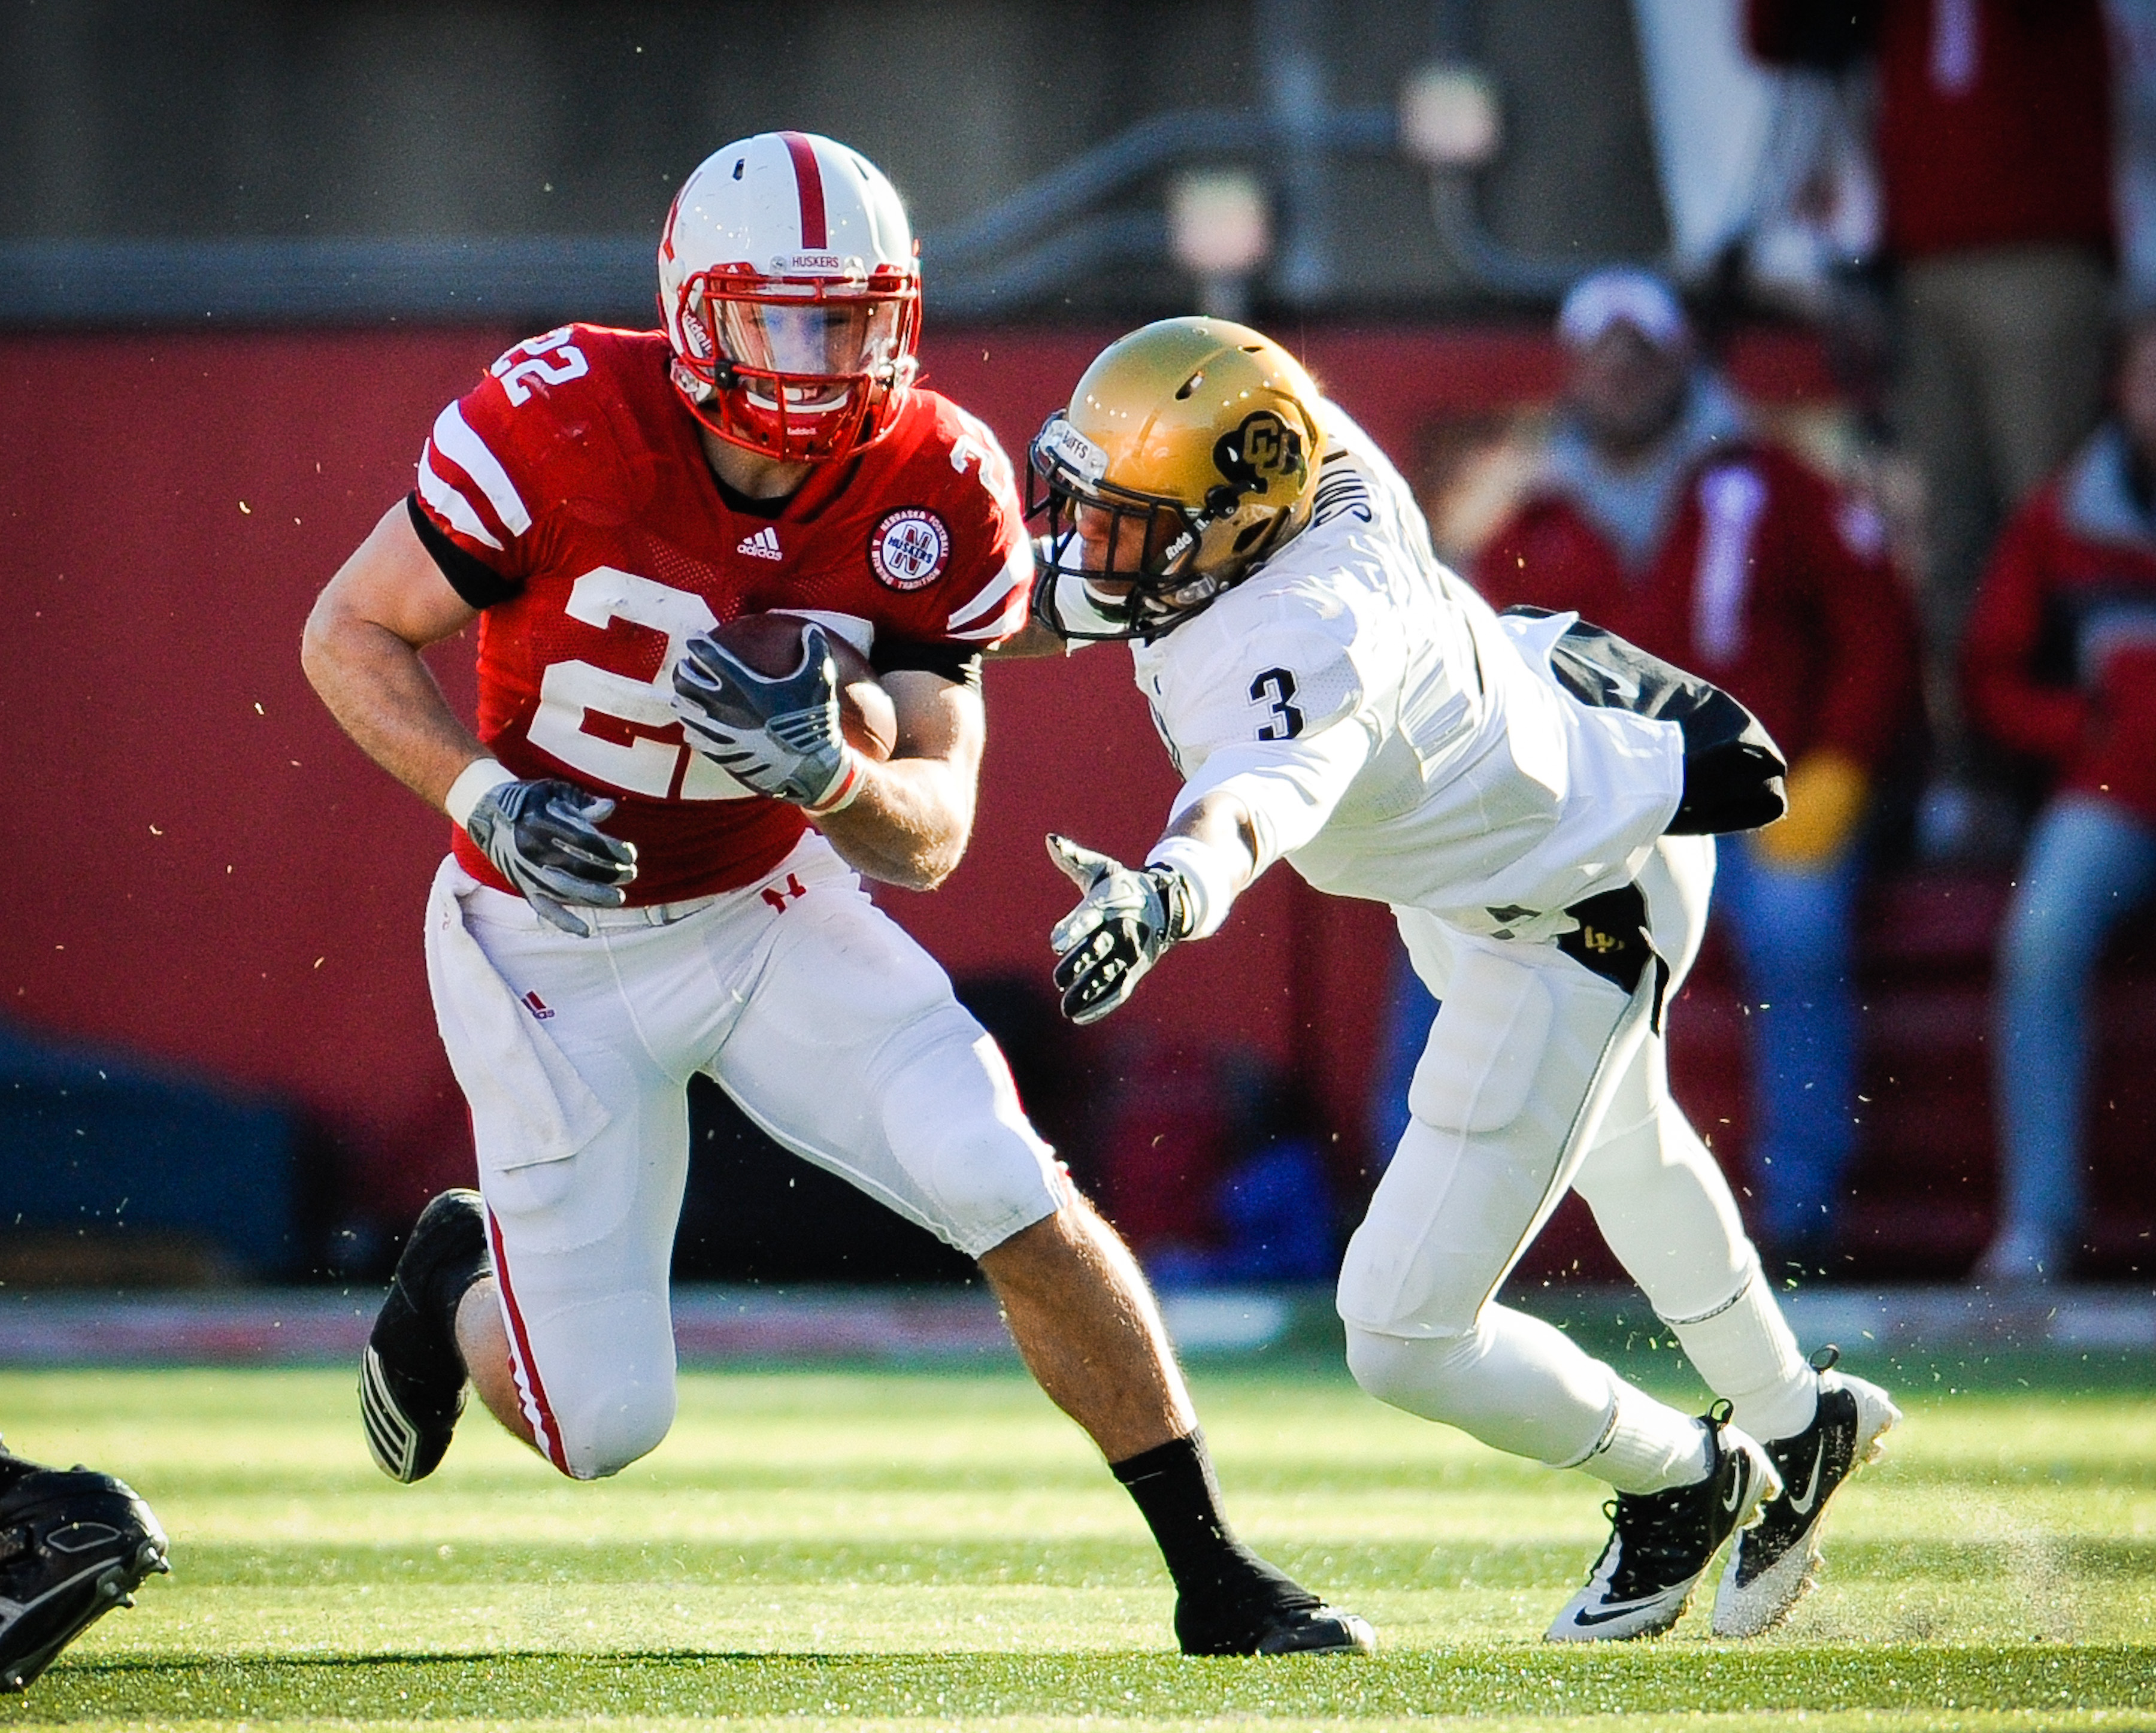 LINCOLN, NE - NOVEMBER 26: Rex Burkhead #22 of the Nebraska Cornhuskers slips past Jimmy Smith #3 of the Colorado Buffaloes during their game at Memorial Stadium on November 26, 2010 in Lincoln, Nebraska. Nebraska defeated Colorado 45-17 (Photo by Eric Fr